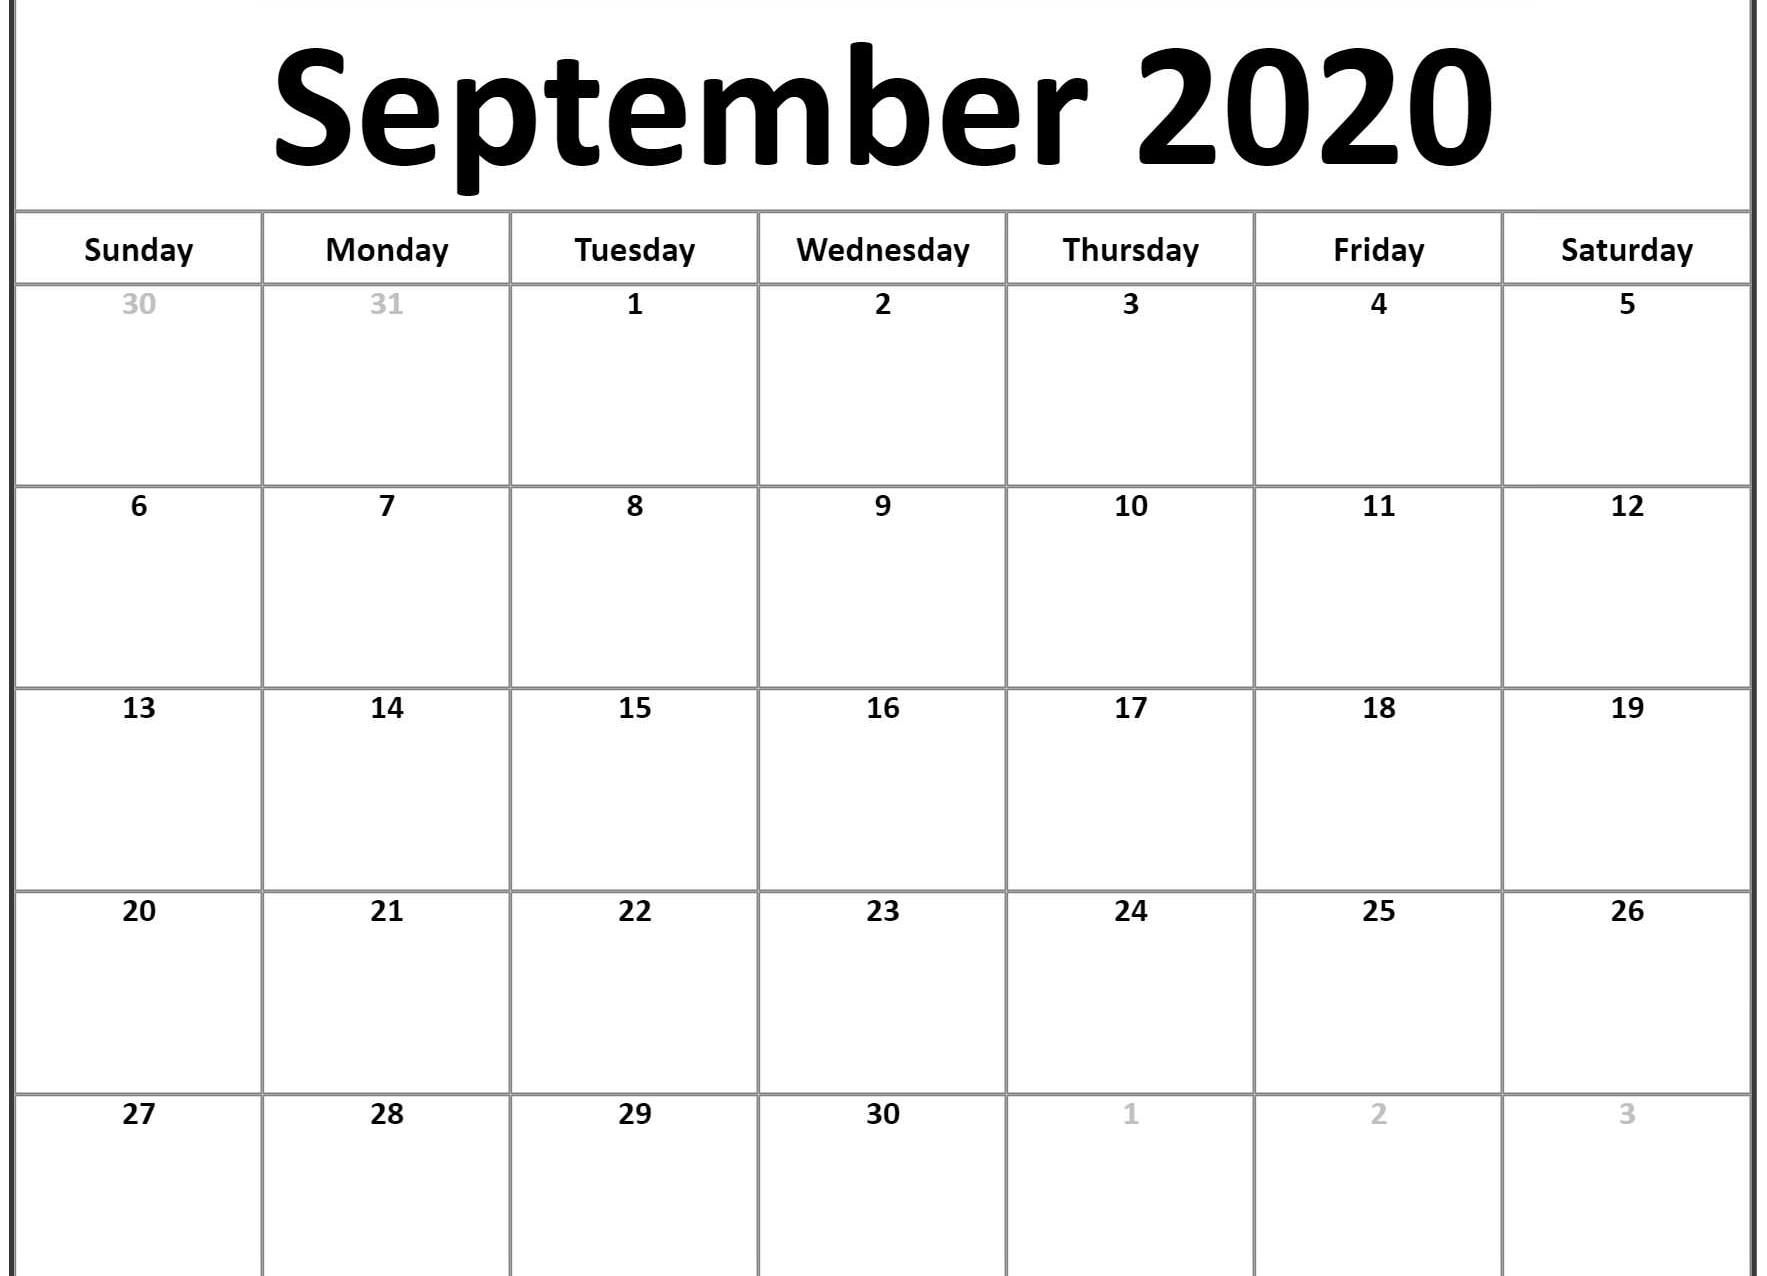 September 2020 Calendar Template | Printable Calendar